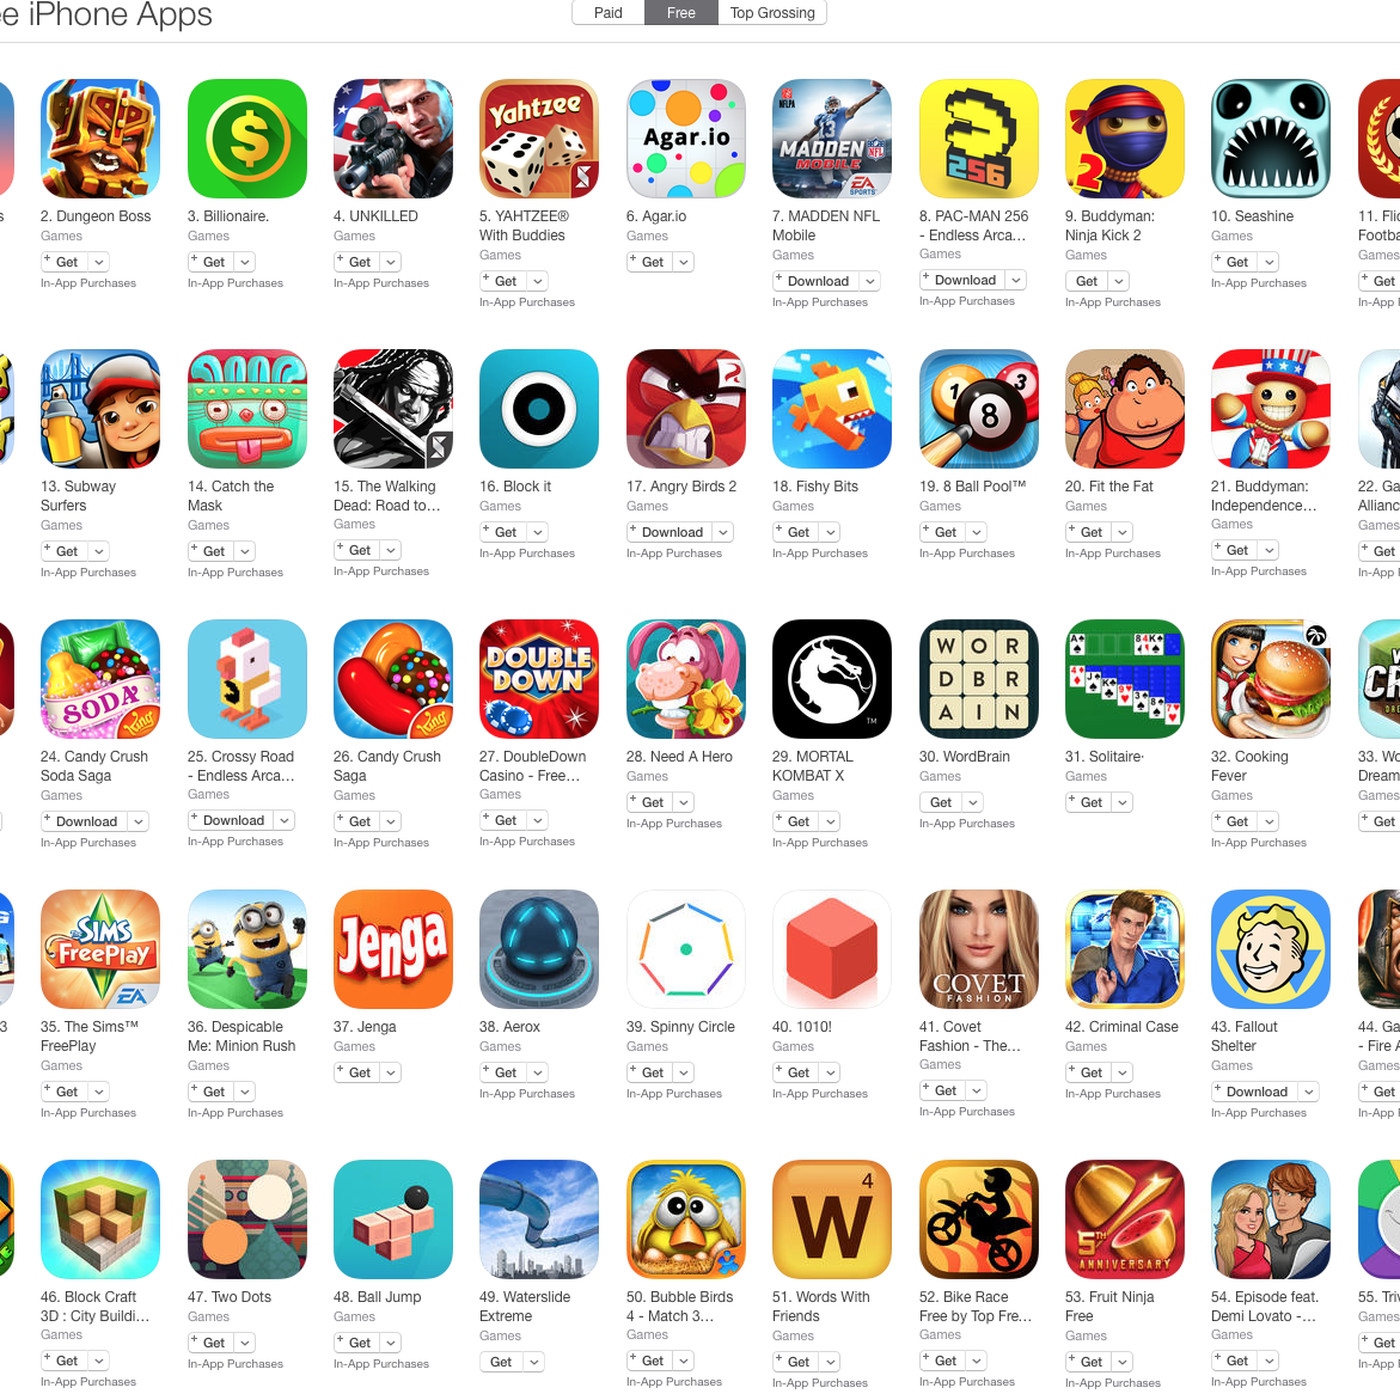 On the app store